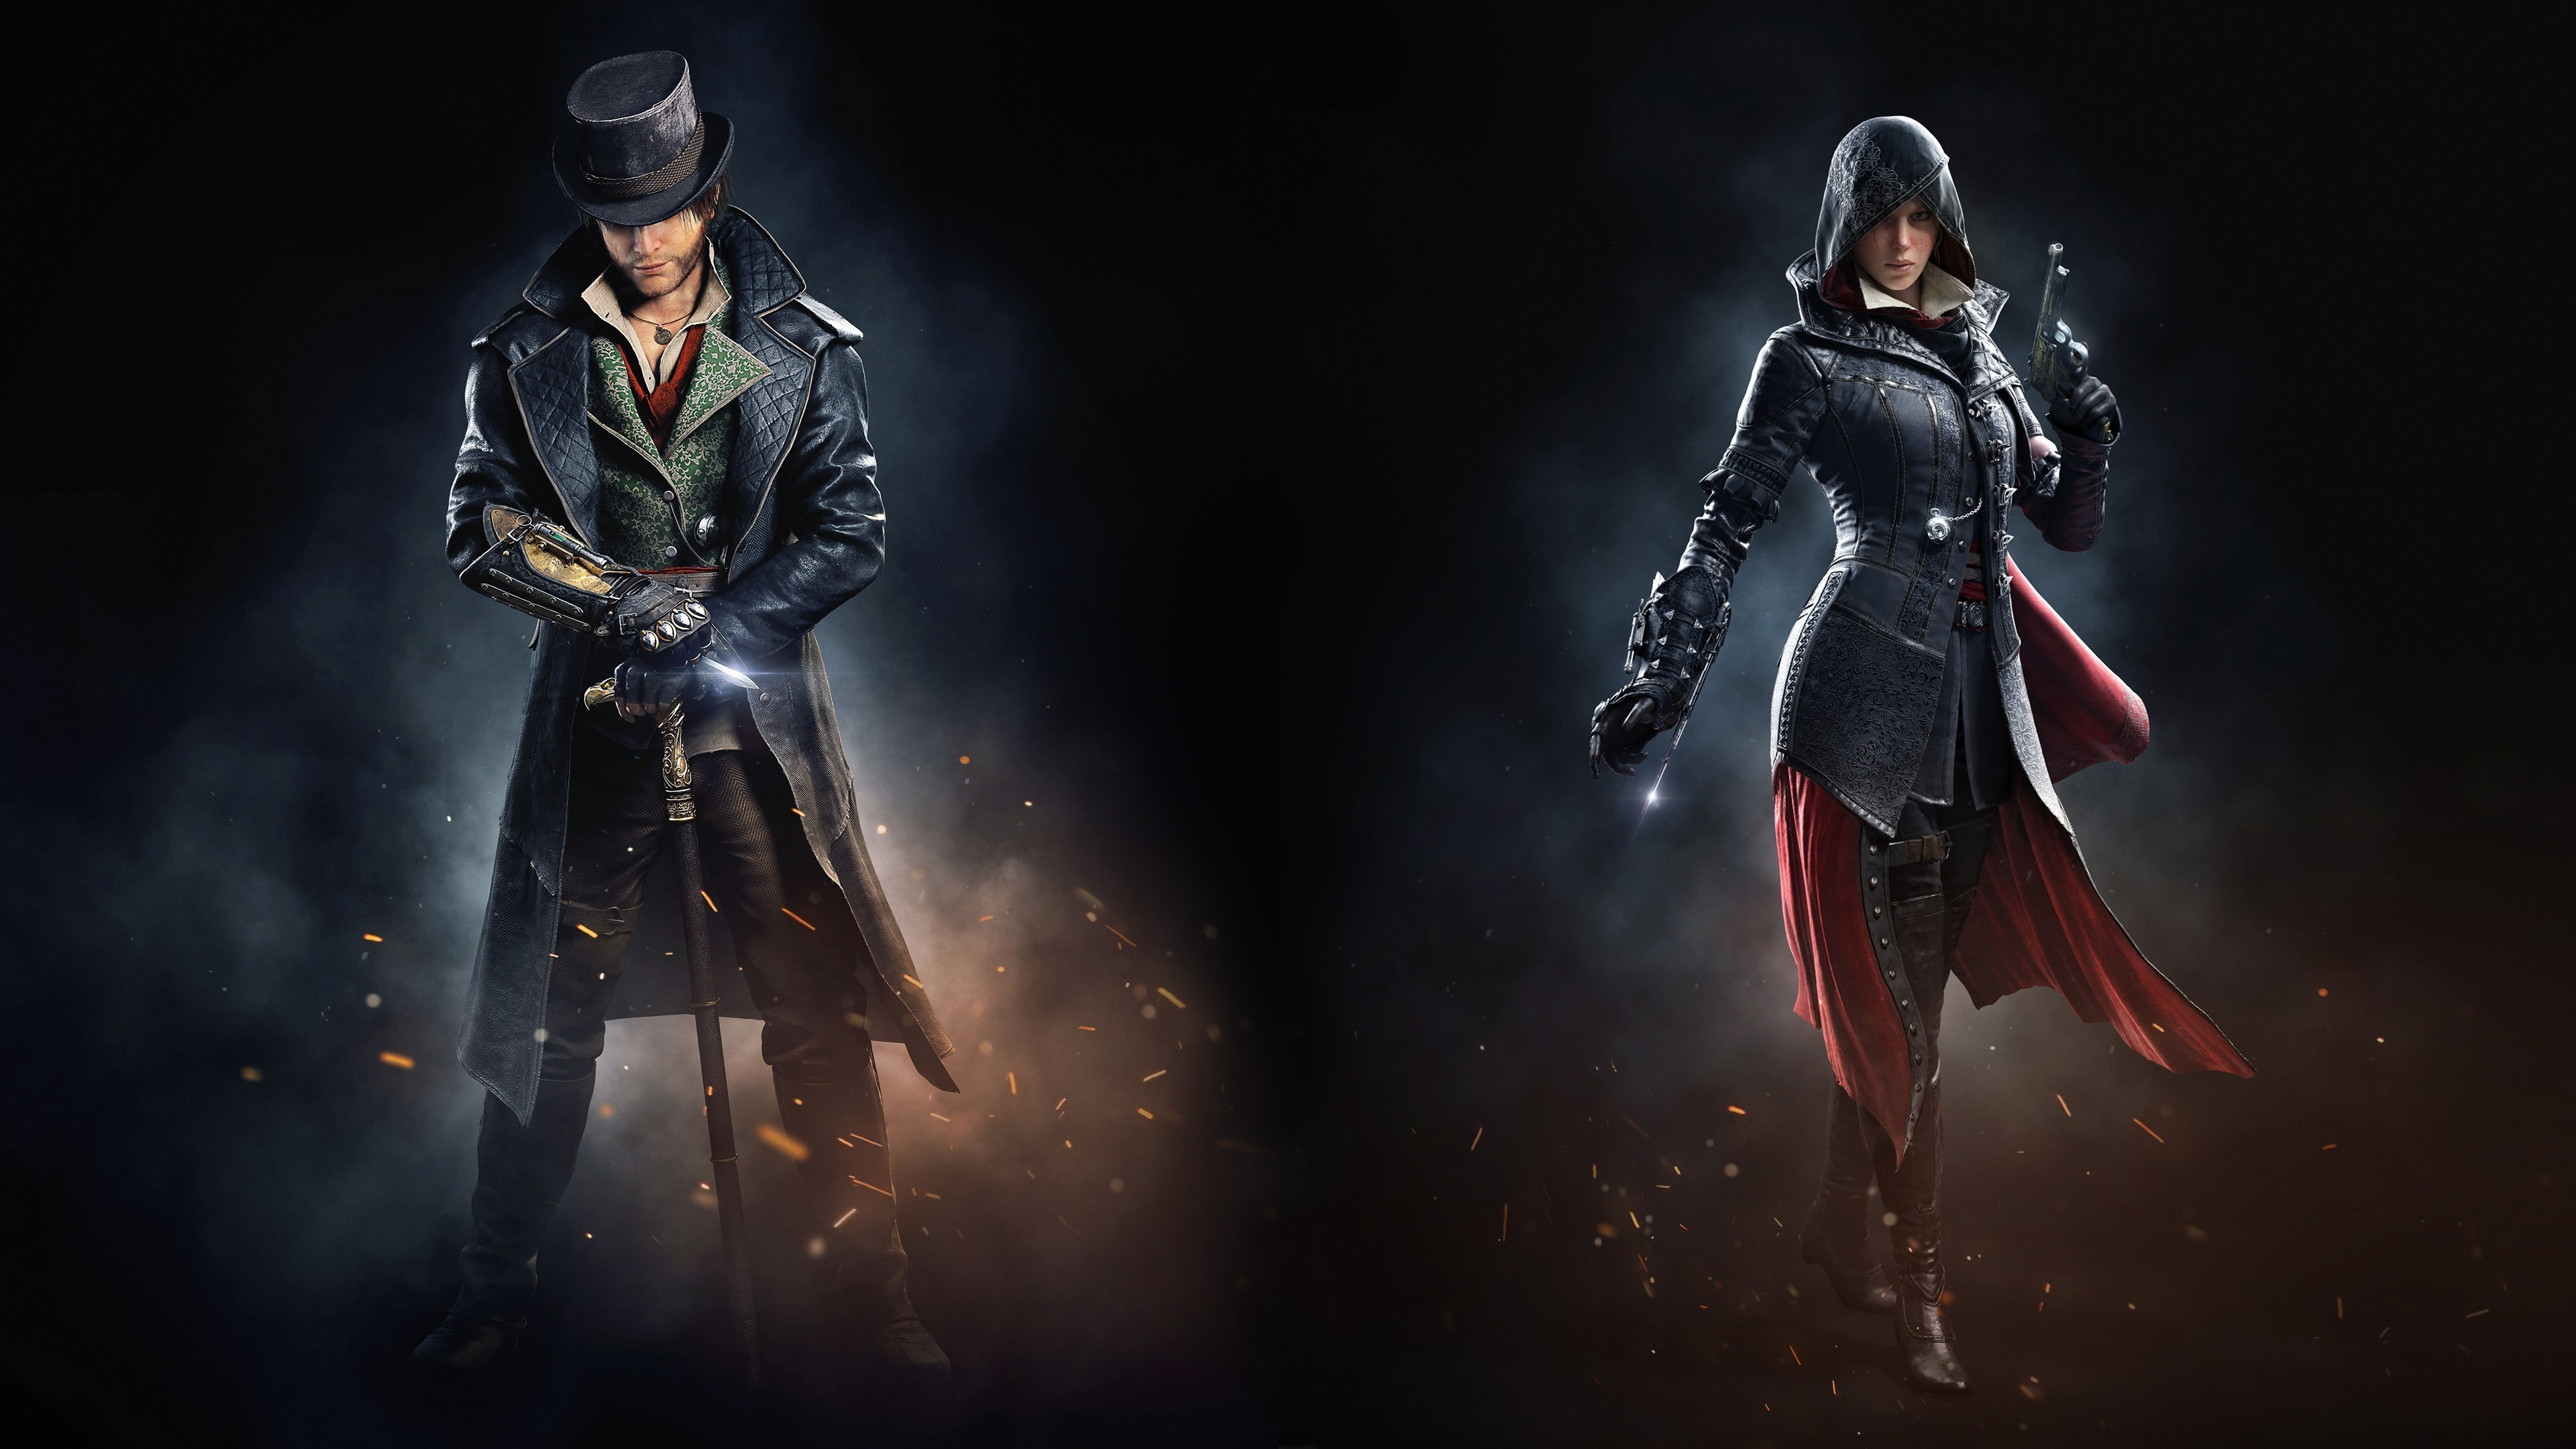 3840x2160 Evie Frye, Video Games, Assassins Creed Syndicate, Jacob Frye, Crysis  Wallpapers HD / Desktop and Mobile Backgrounds